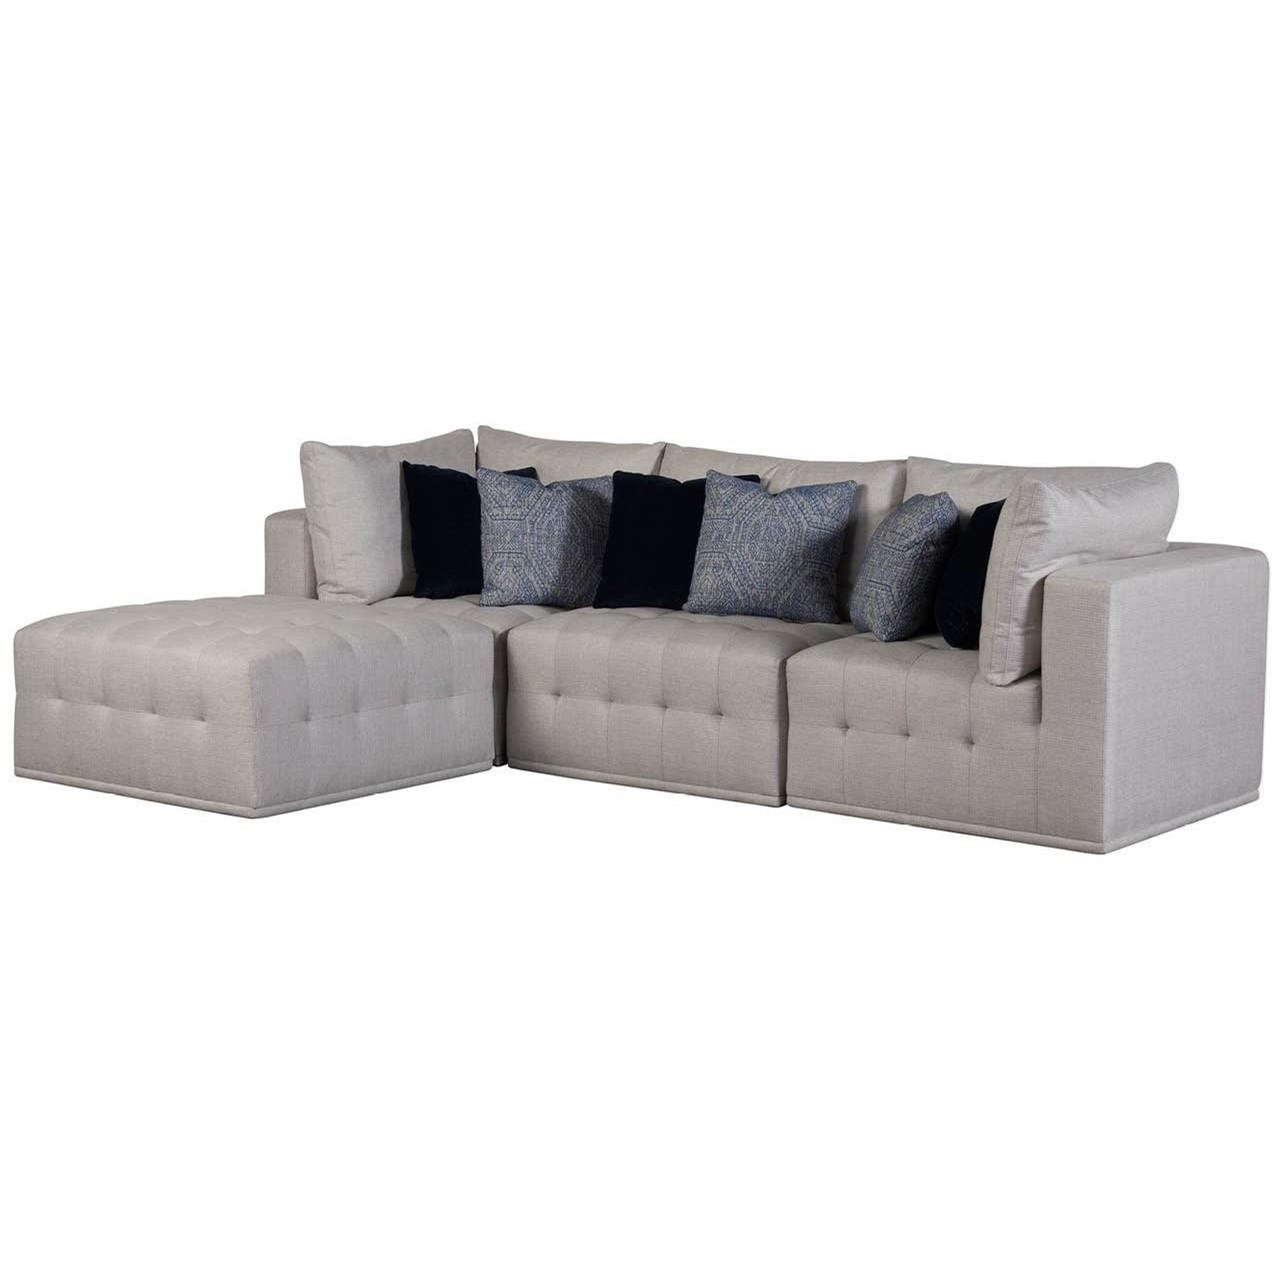 Donovan 4-Piece Sectional by Universal at Powell's Furniture and Mattress